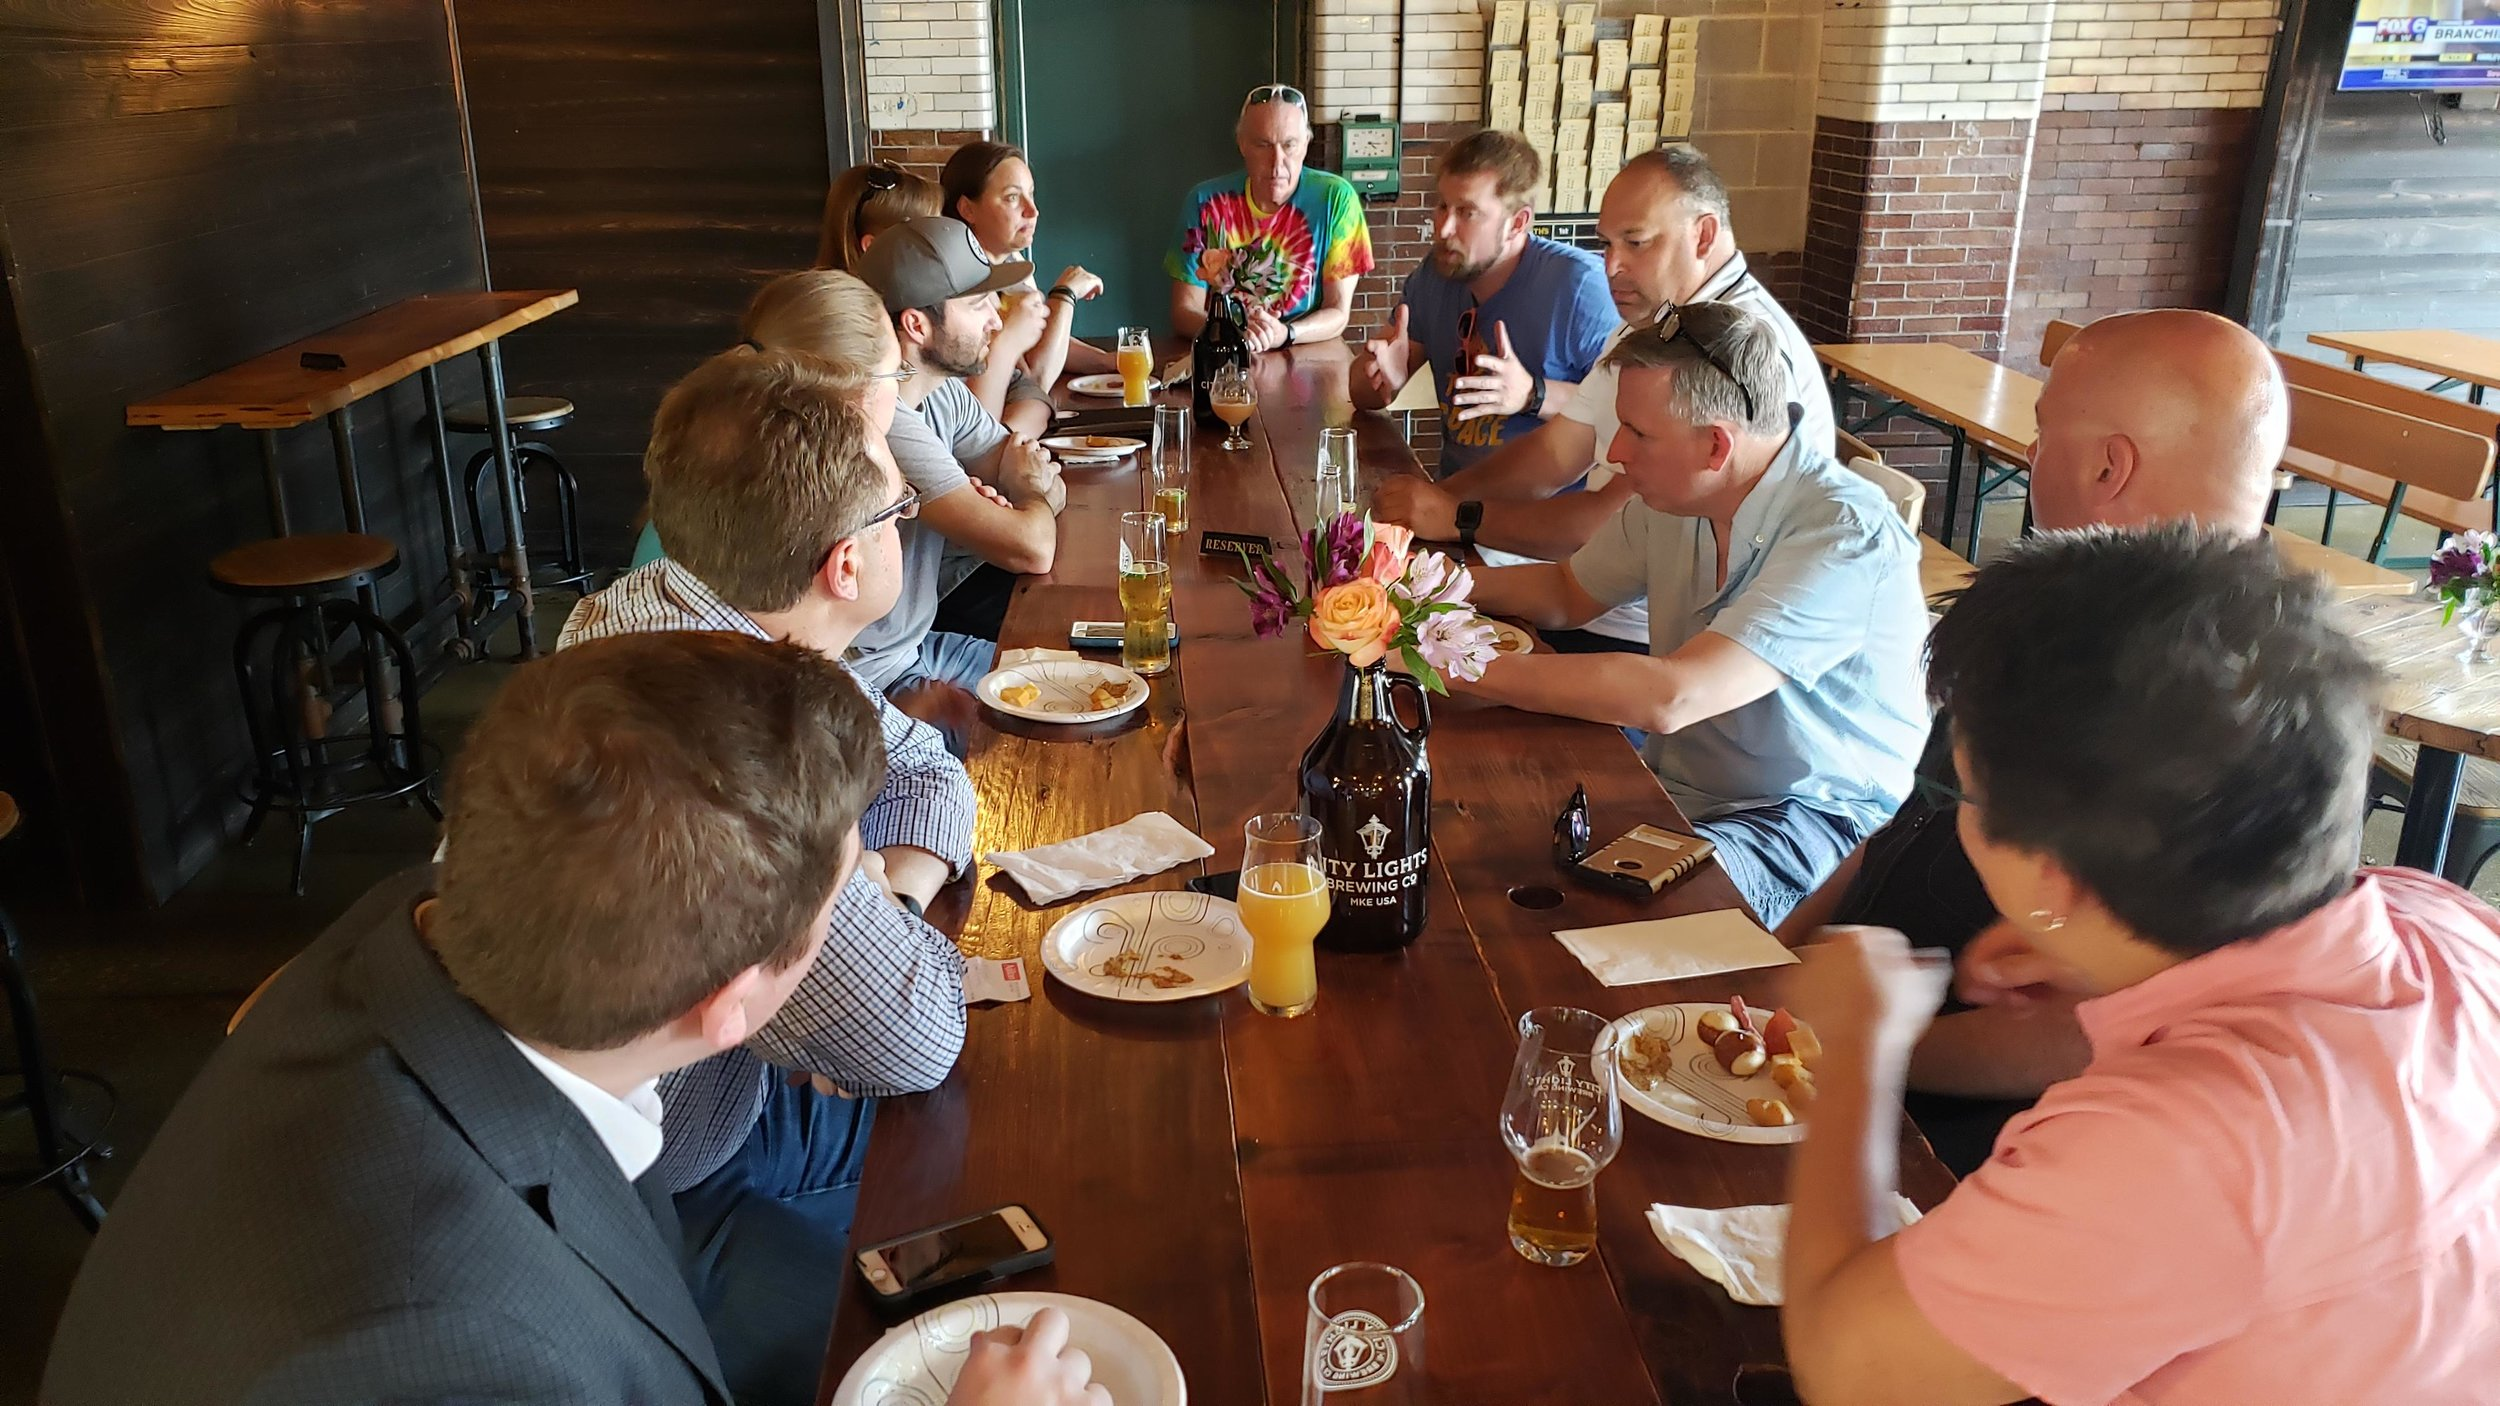 Valley businesses got together to brainstorm a beer that would reflect the Valley's history as well as what it is today, a vibrant neighborhood filled with urban nature, good jobs, and popular destinations